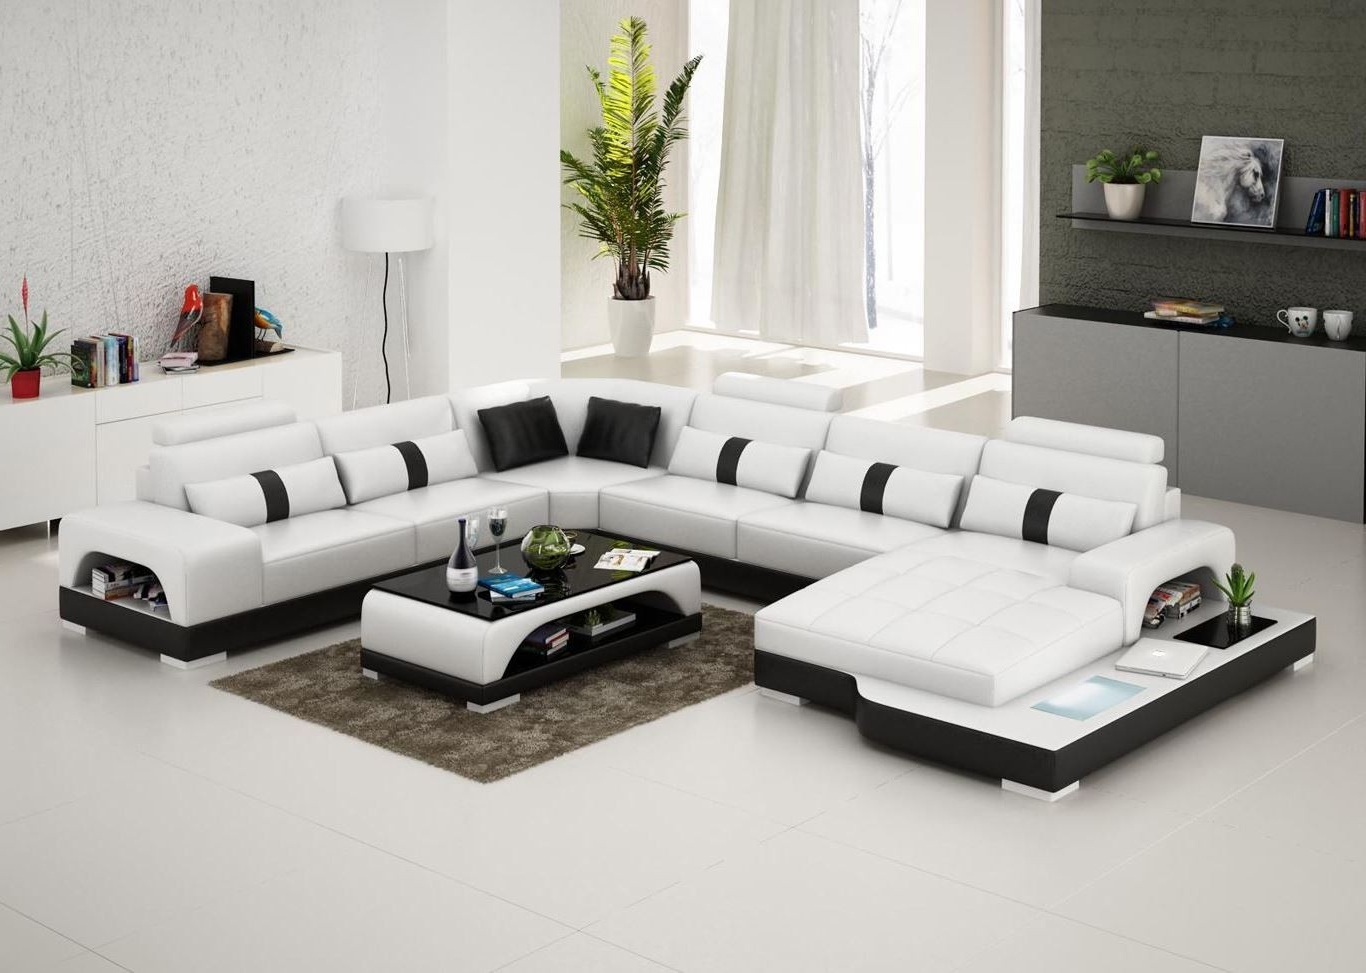 Newest Nz Sectional Sofas In Furniture : Corner Couch Covers Nz Vintage Corner Couch Sectional (View 12 of 20)